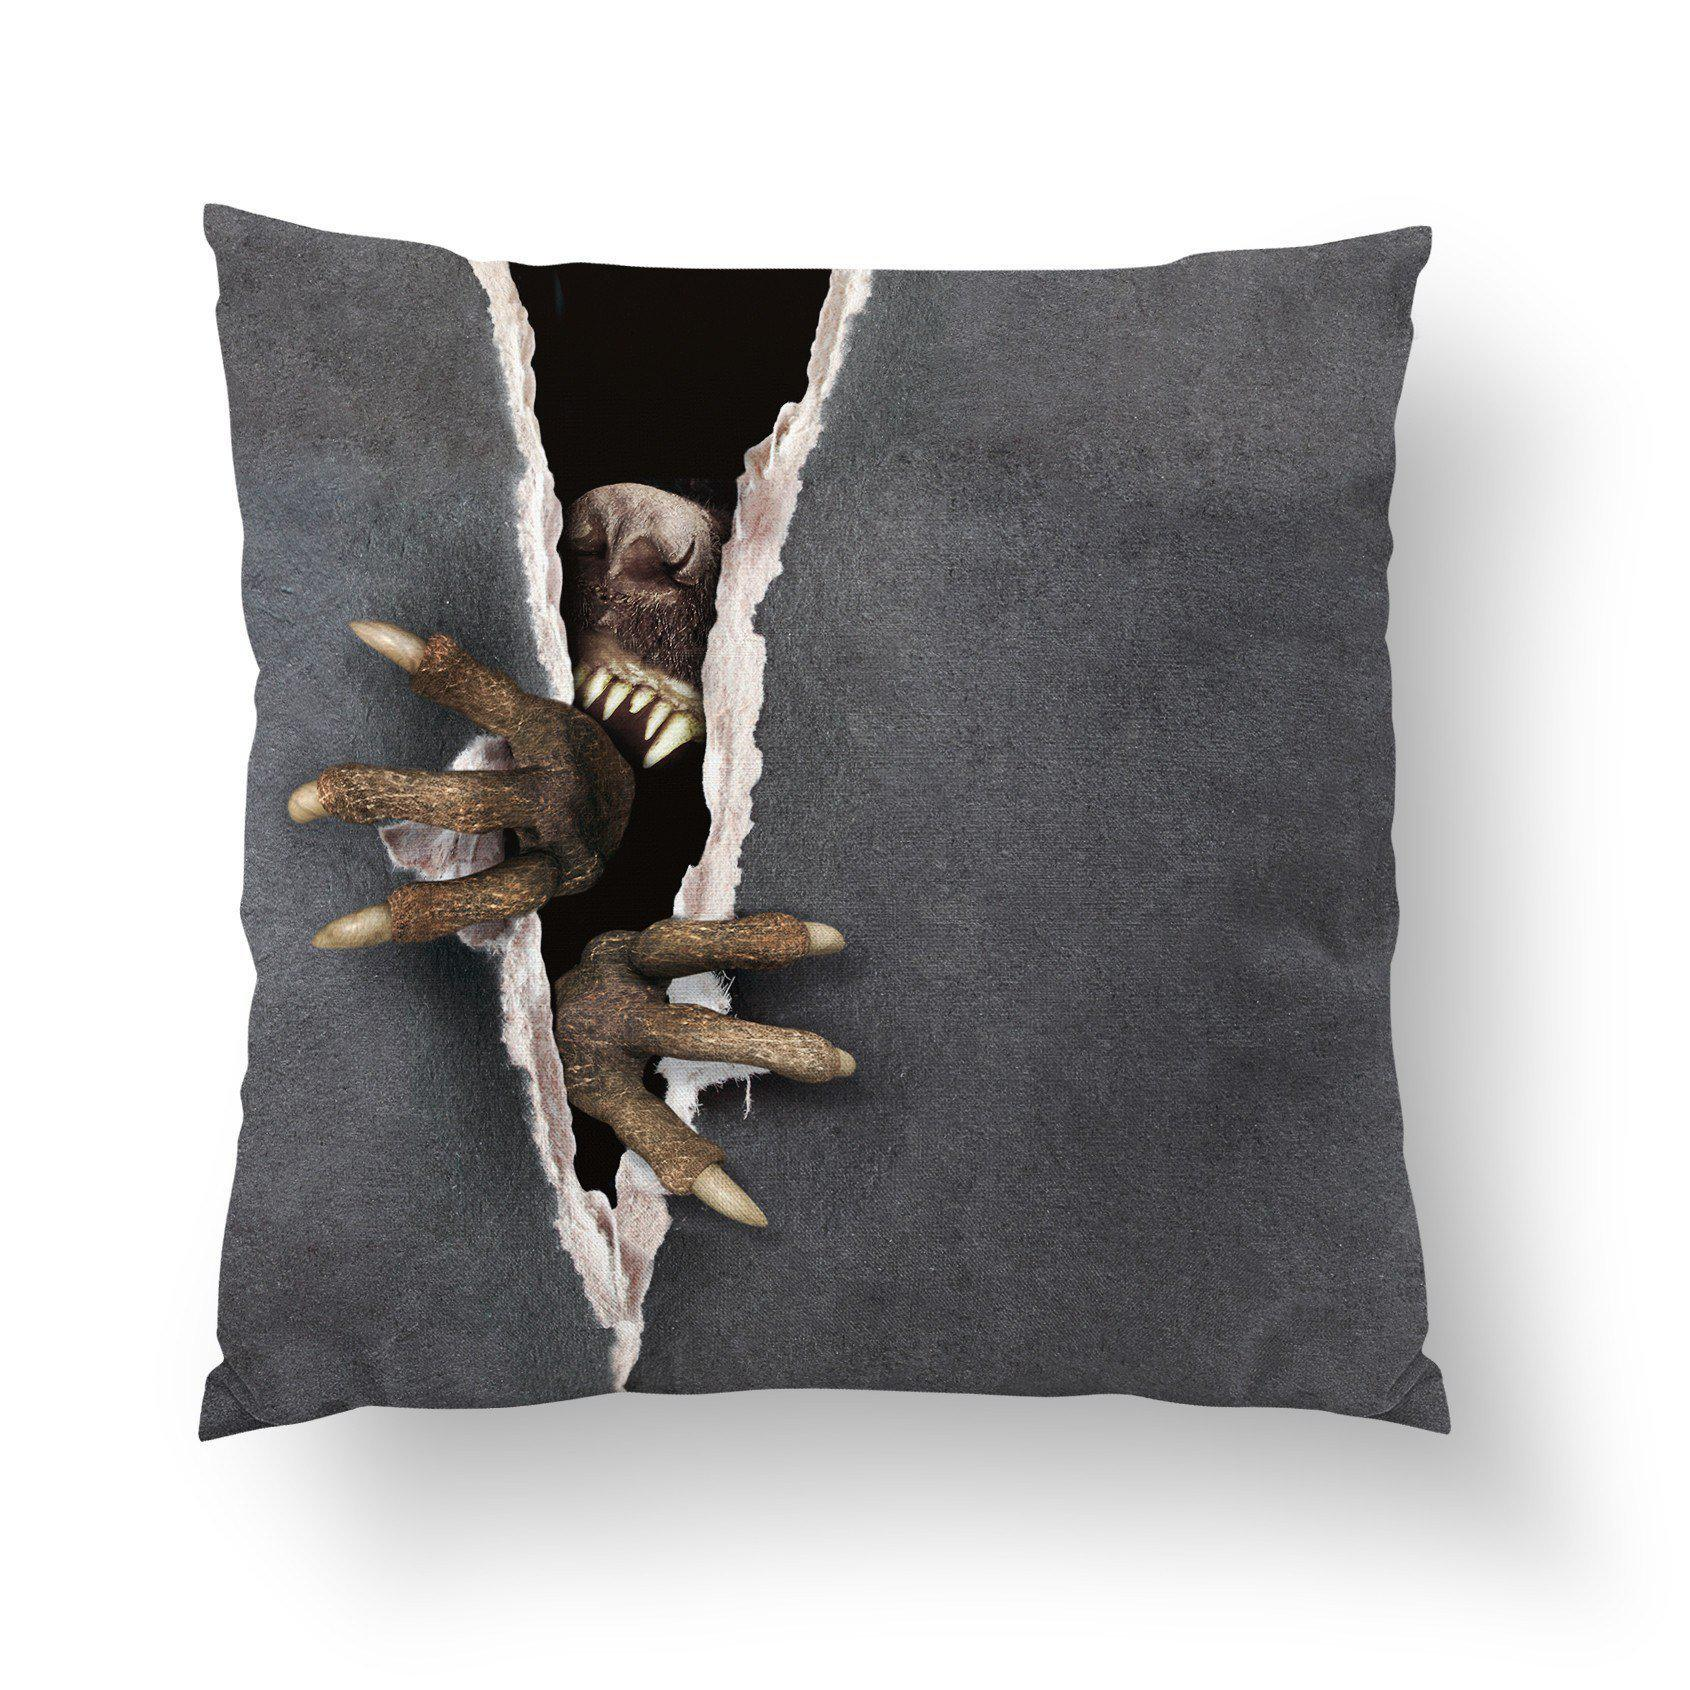 Werewolf Pillow - Pillow Covers - W.FRANCIS